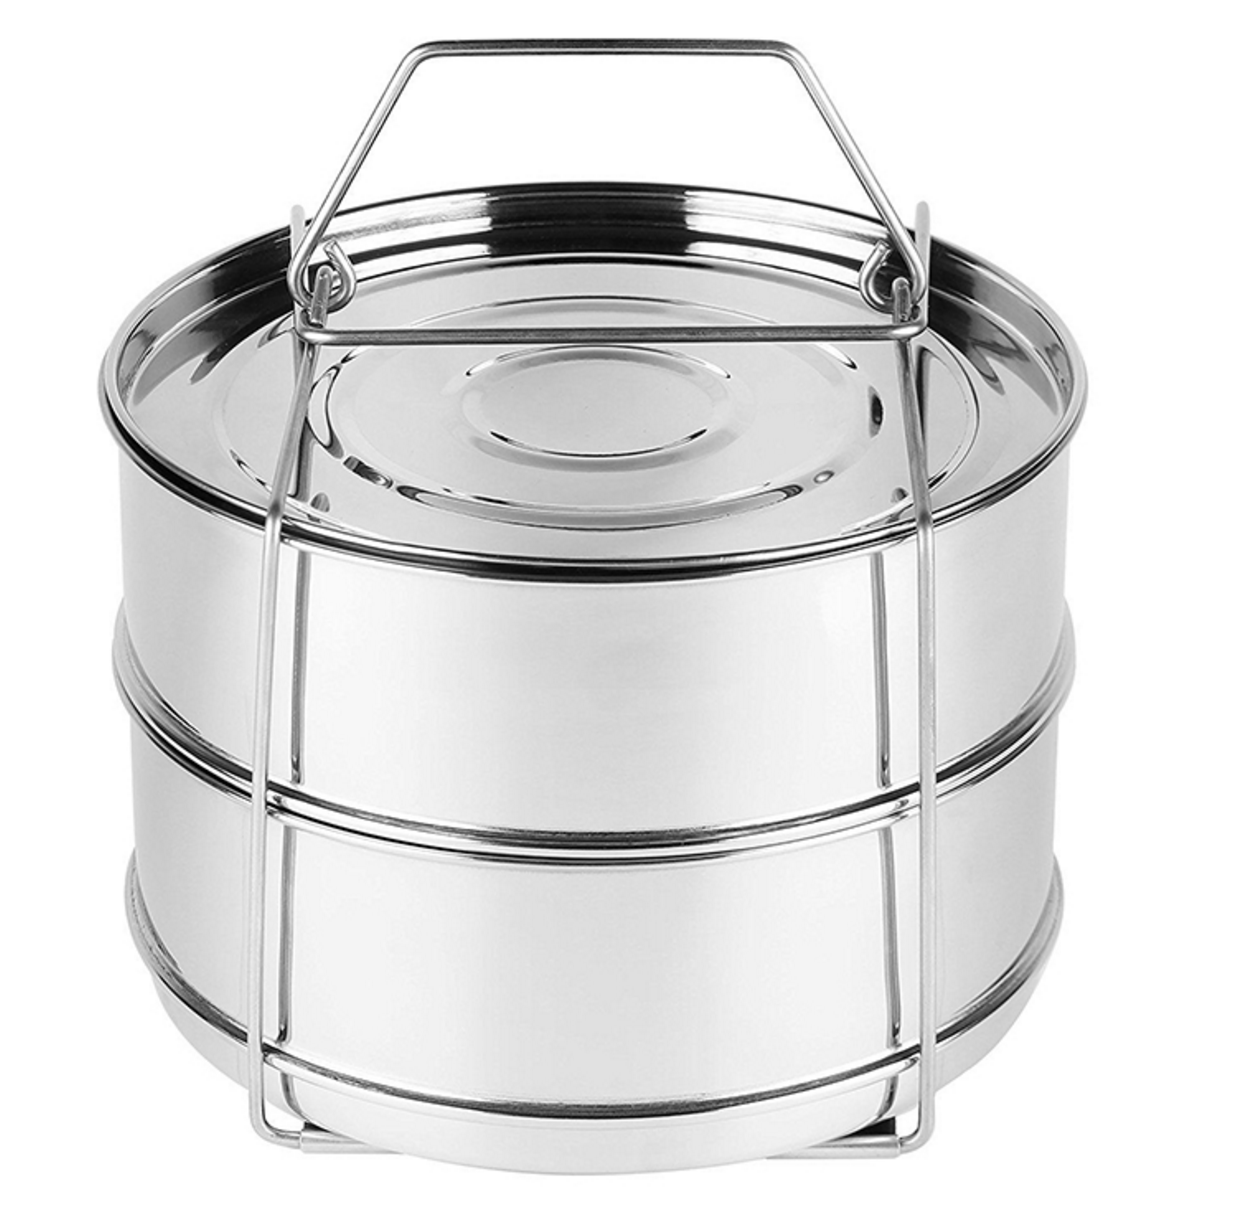 2018 Popular Stackable Stainless Steel High Pressure Cooker Steamer Basket with Lid